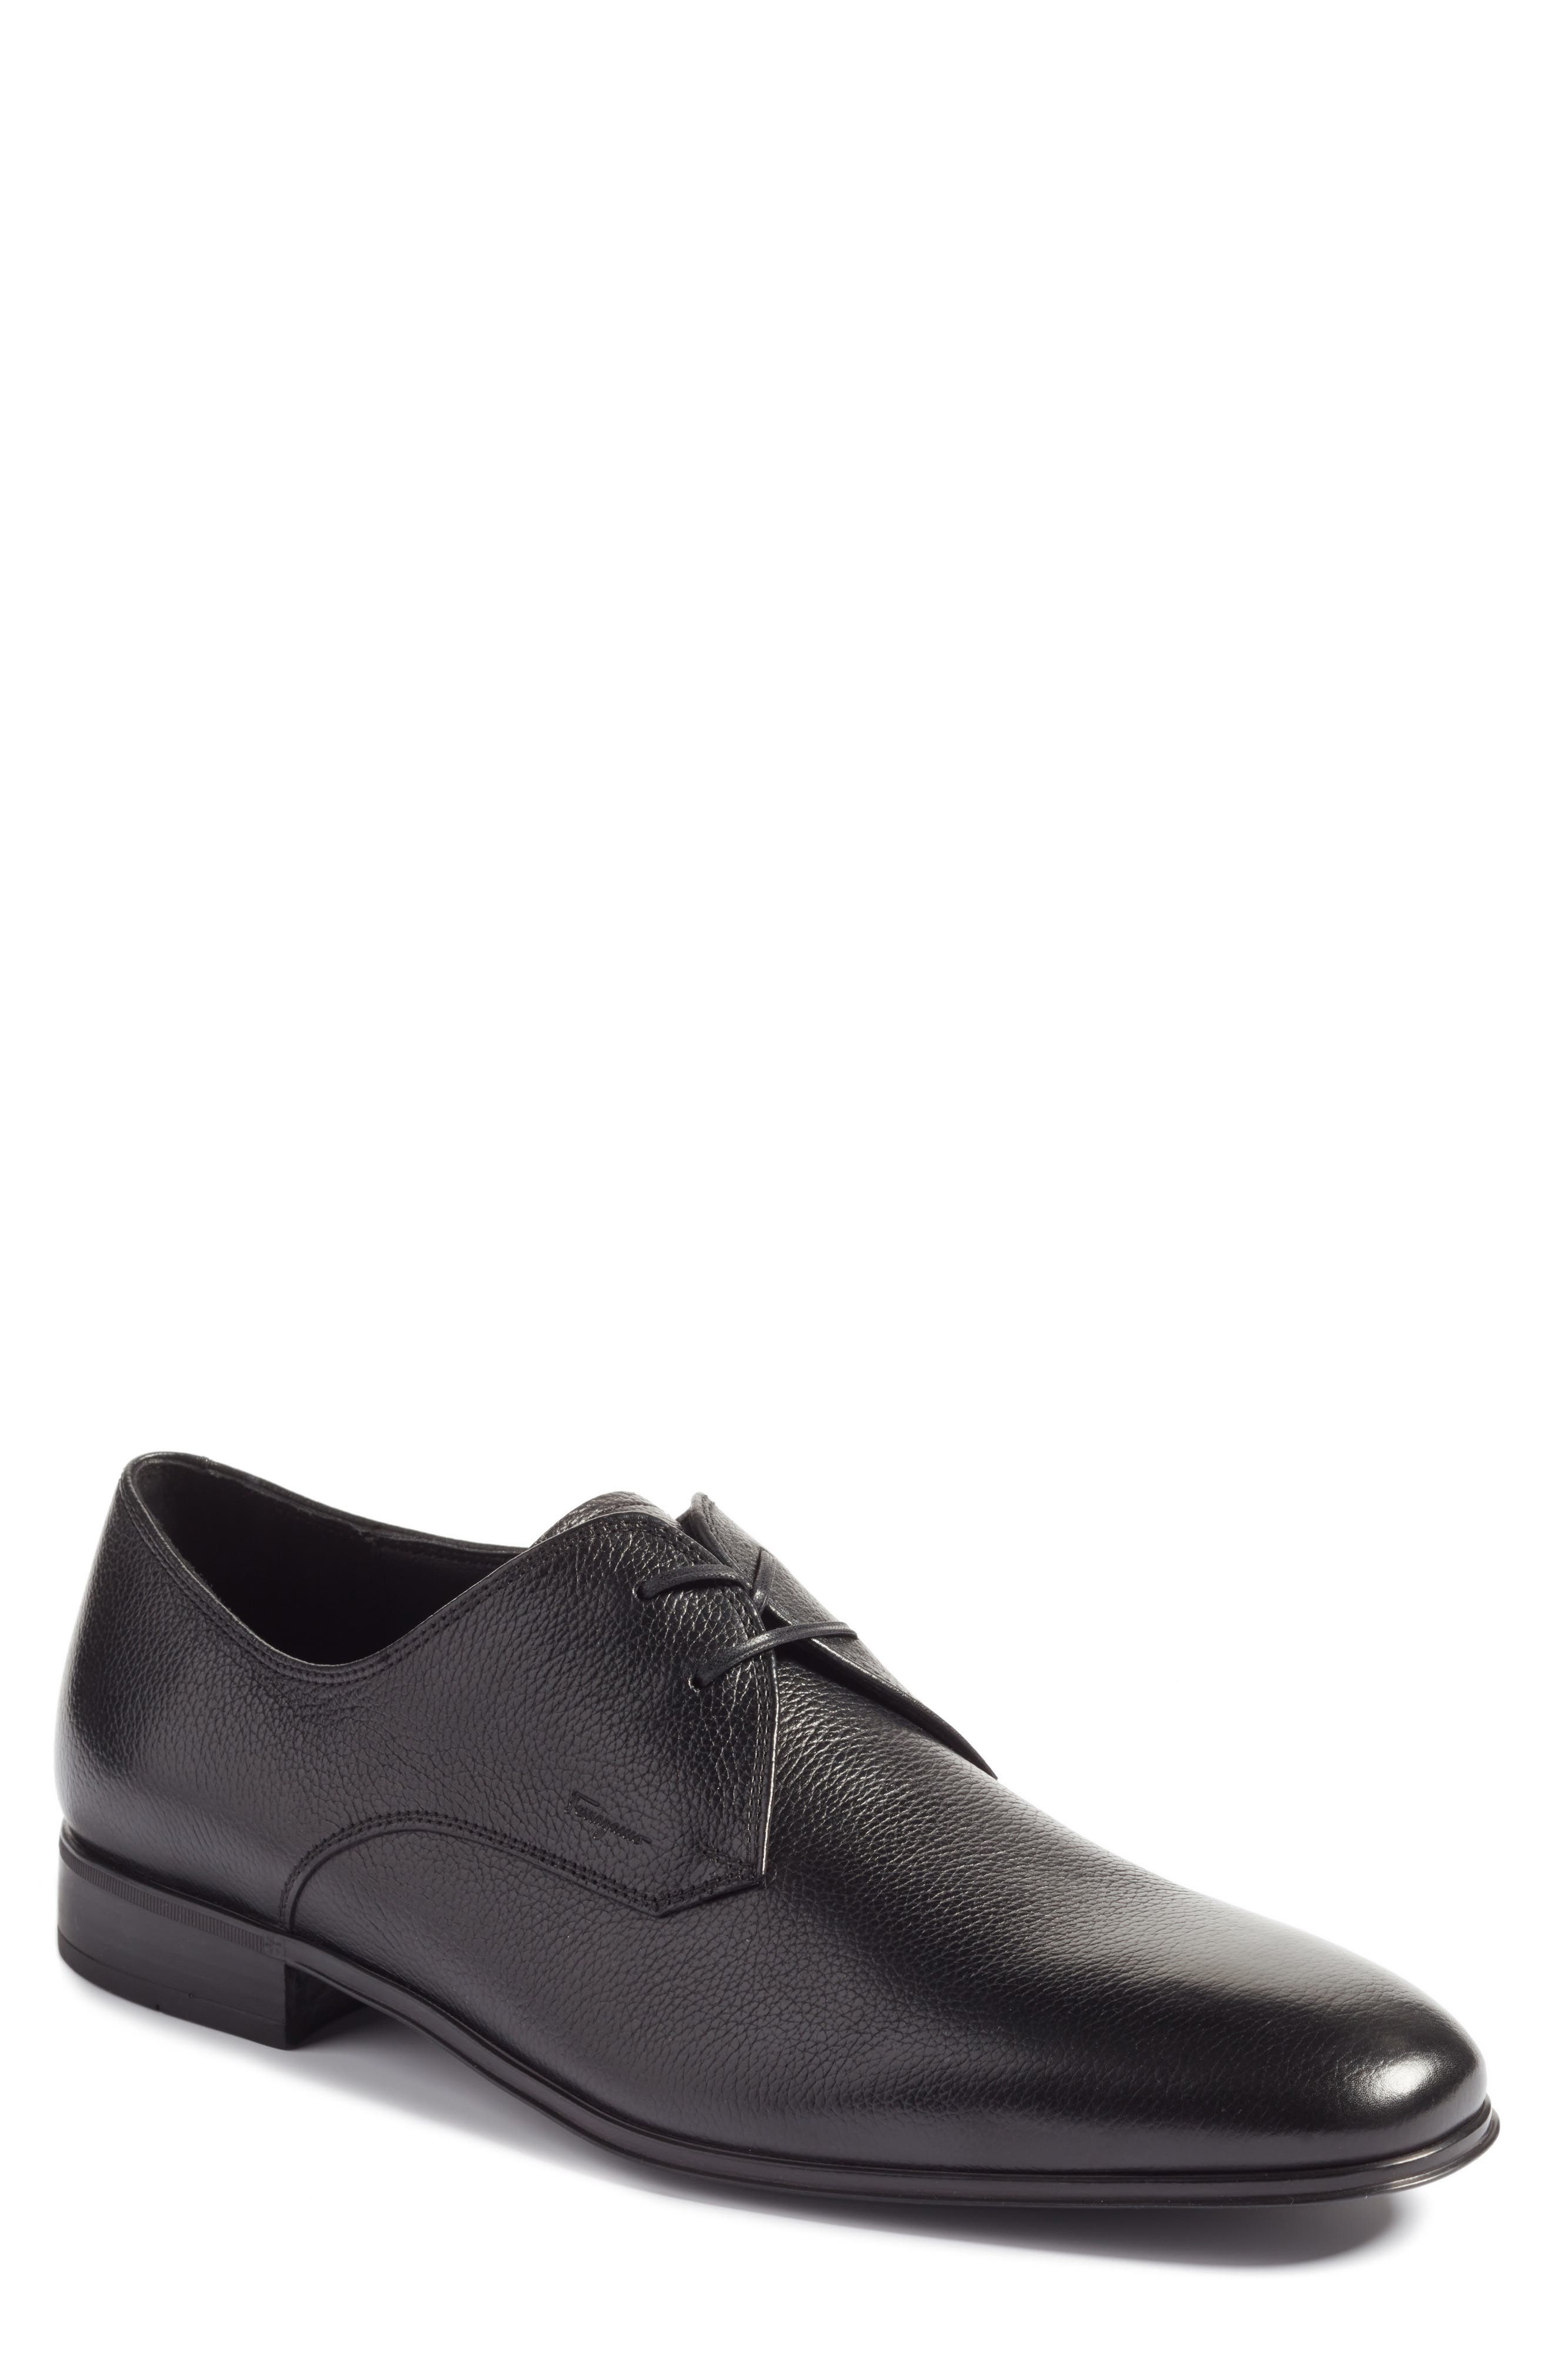 Salvatore Ferragamo Fortunato 2 Plain Toe Derby (Men)